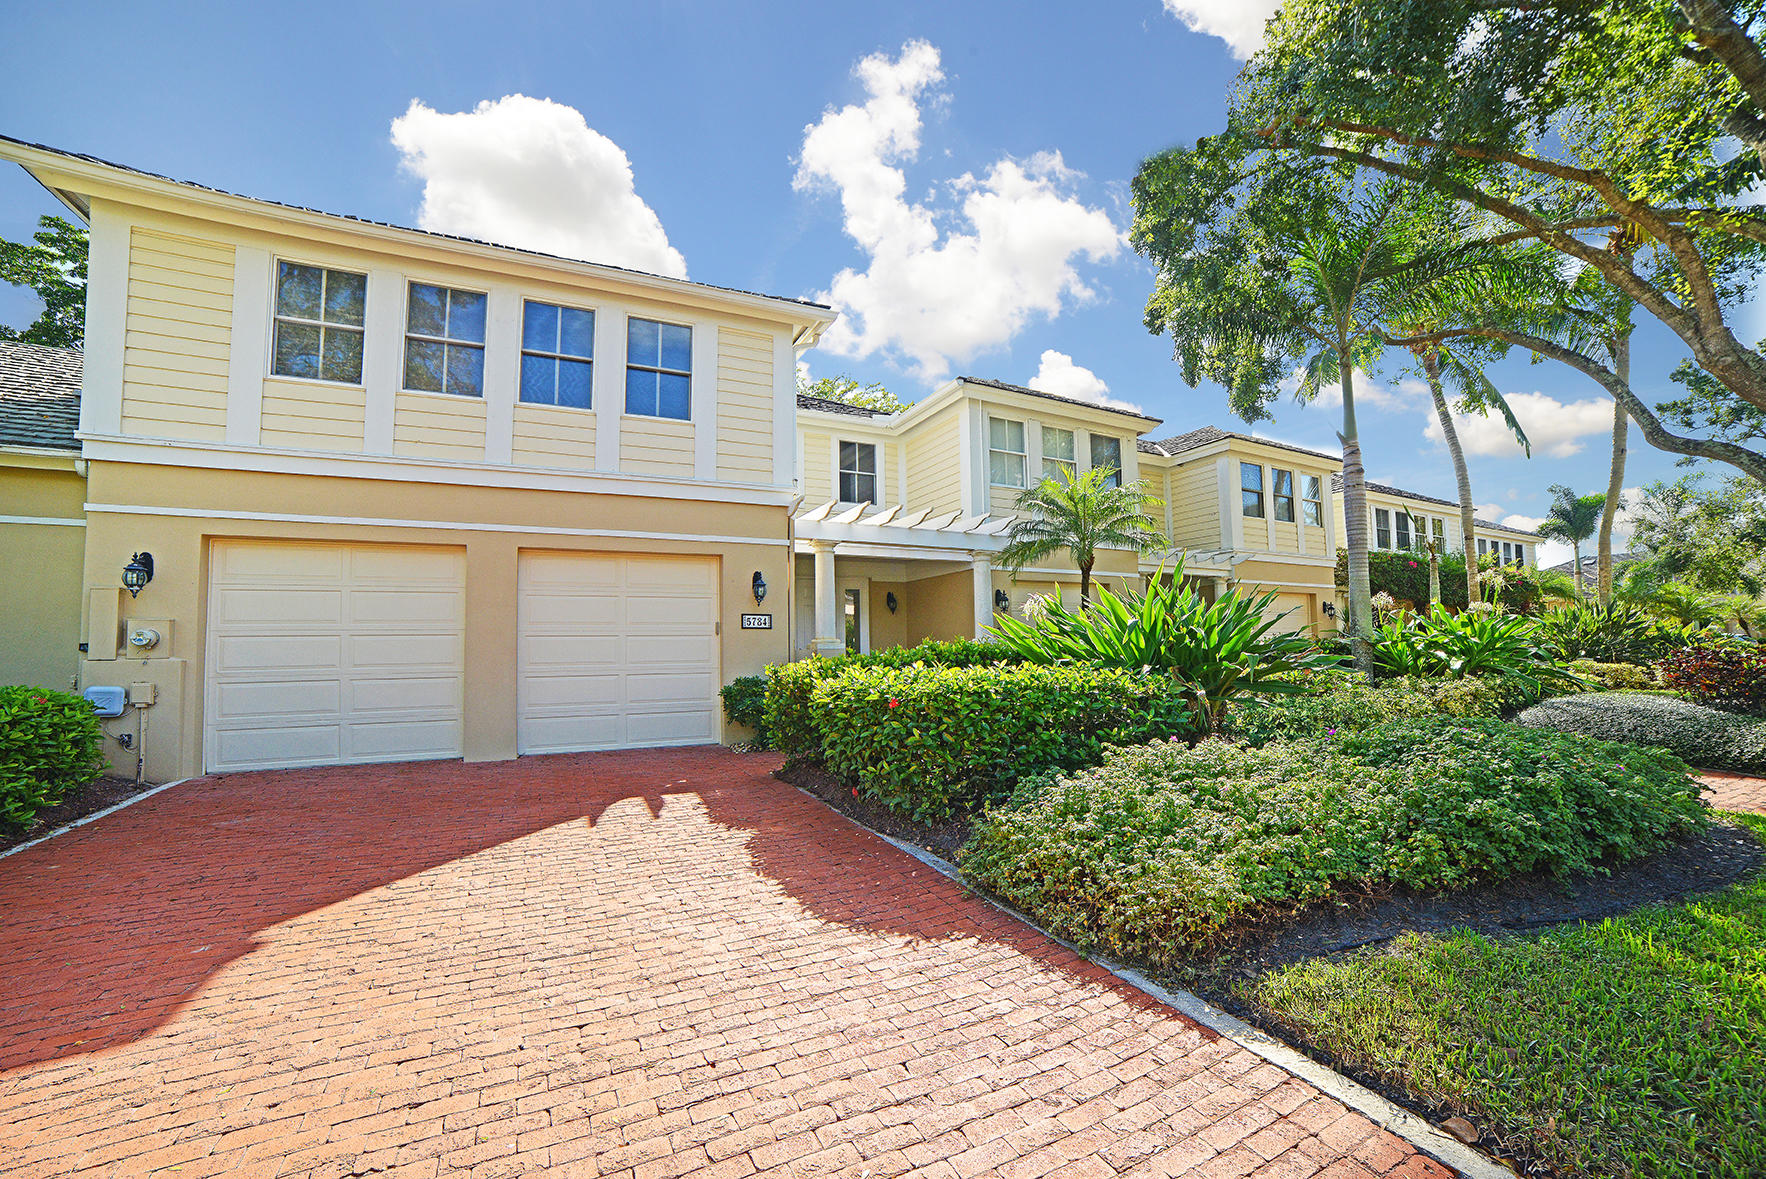 Details for 5784 39th Avenue Nw, Boca Raton, FL 33496